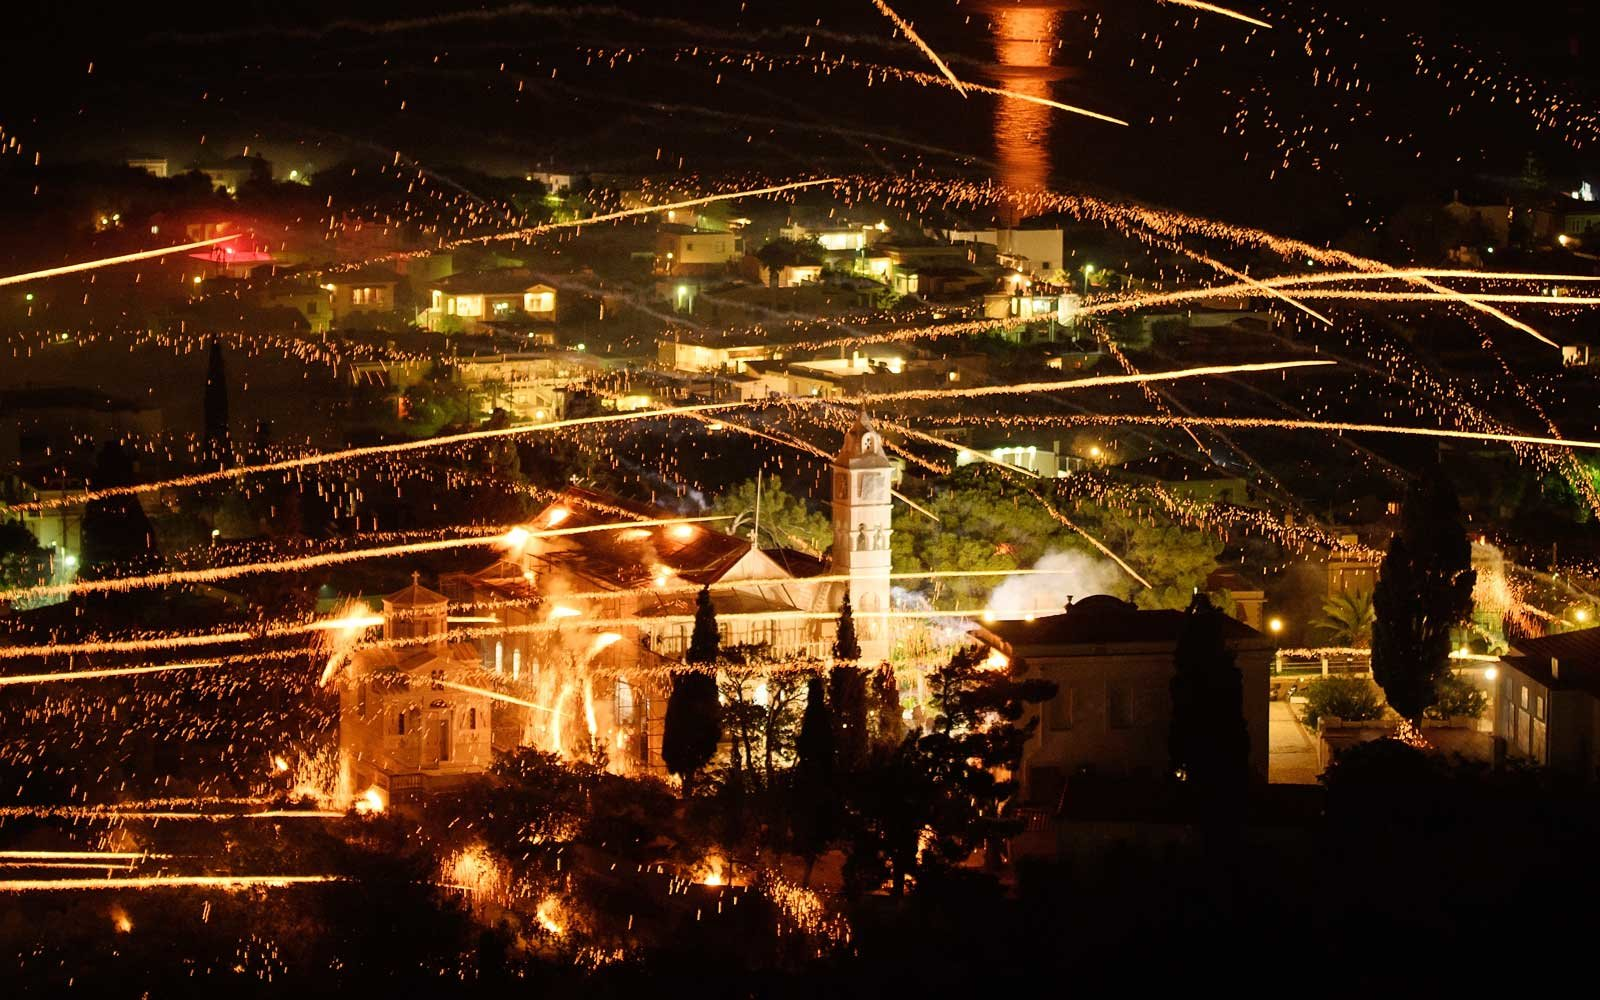 Rival Churches Celebrate Easter With Annual Firework Rocket War in Chios, Greece